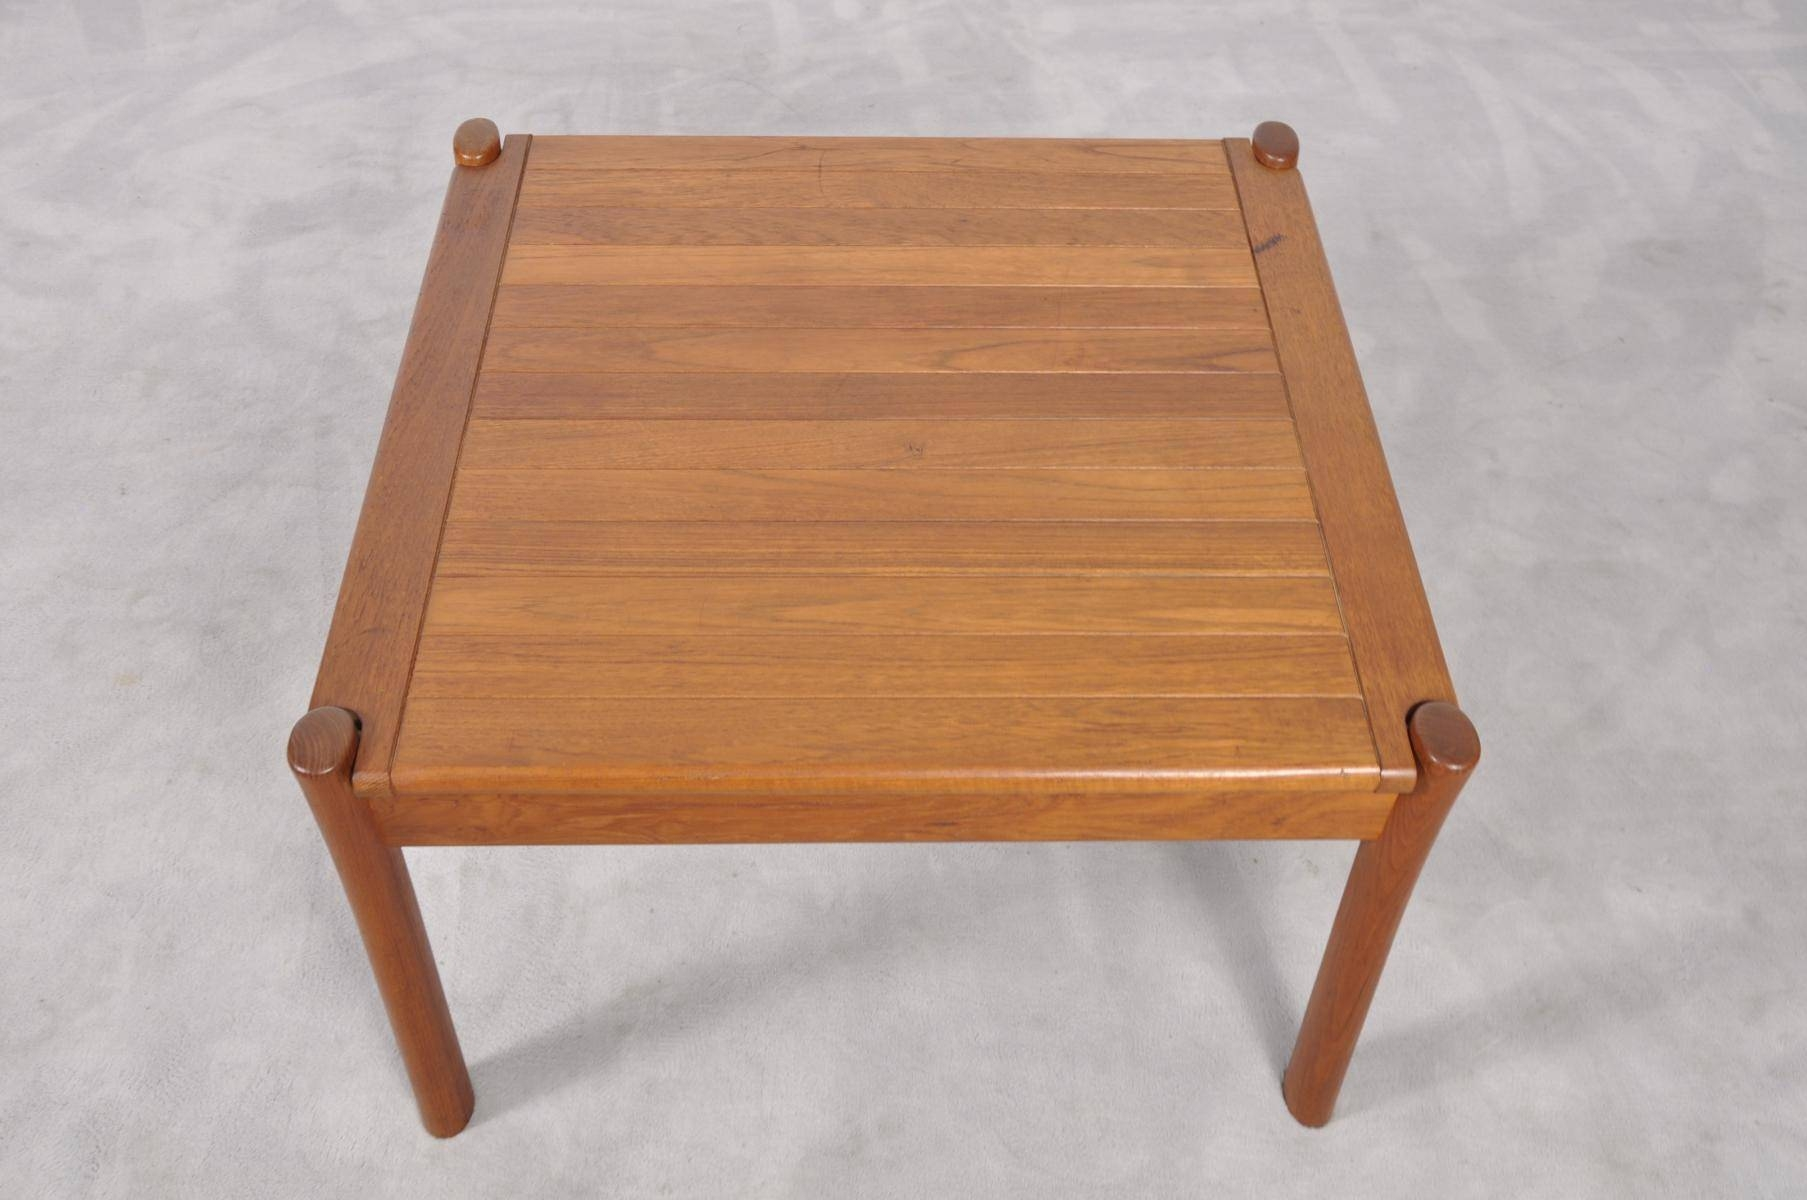 Vintage Danish Teak Coffee Table With Rounded Edges For Sale At Pamono with Coffee Tables With Rounded Corners (Image 27 of 30)